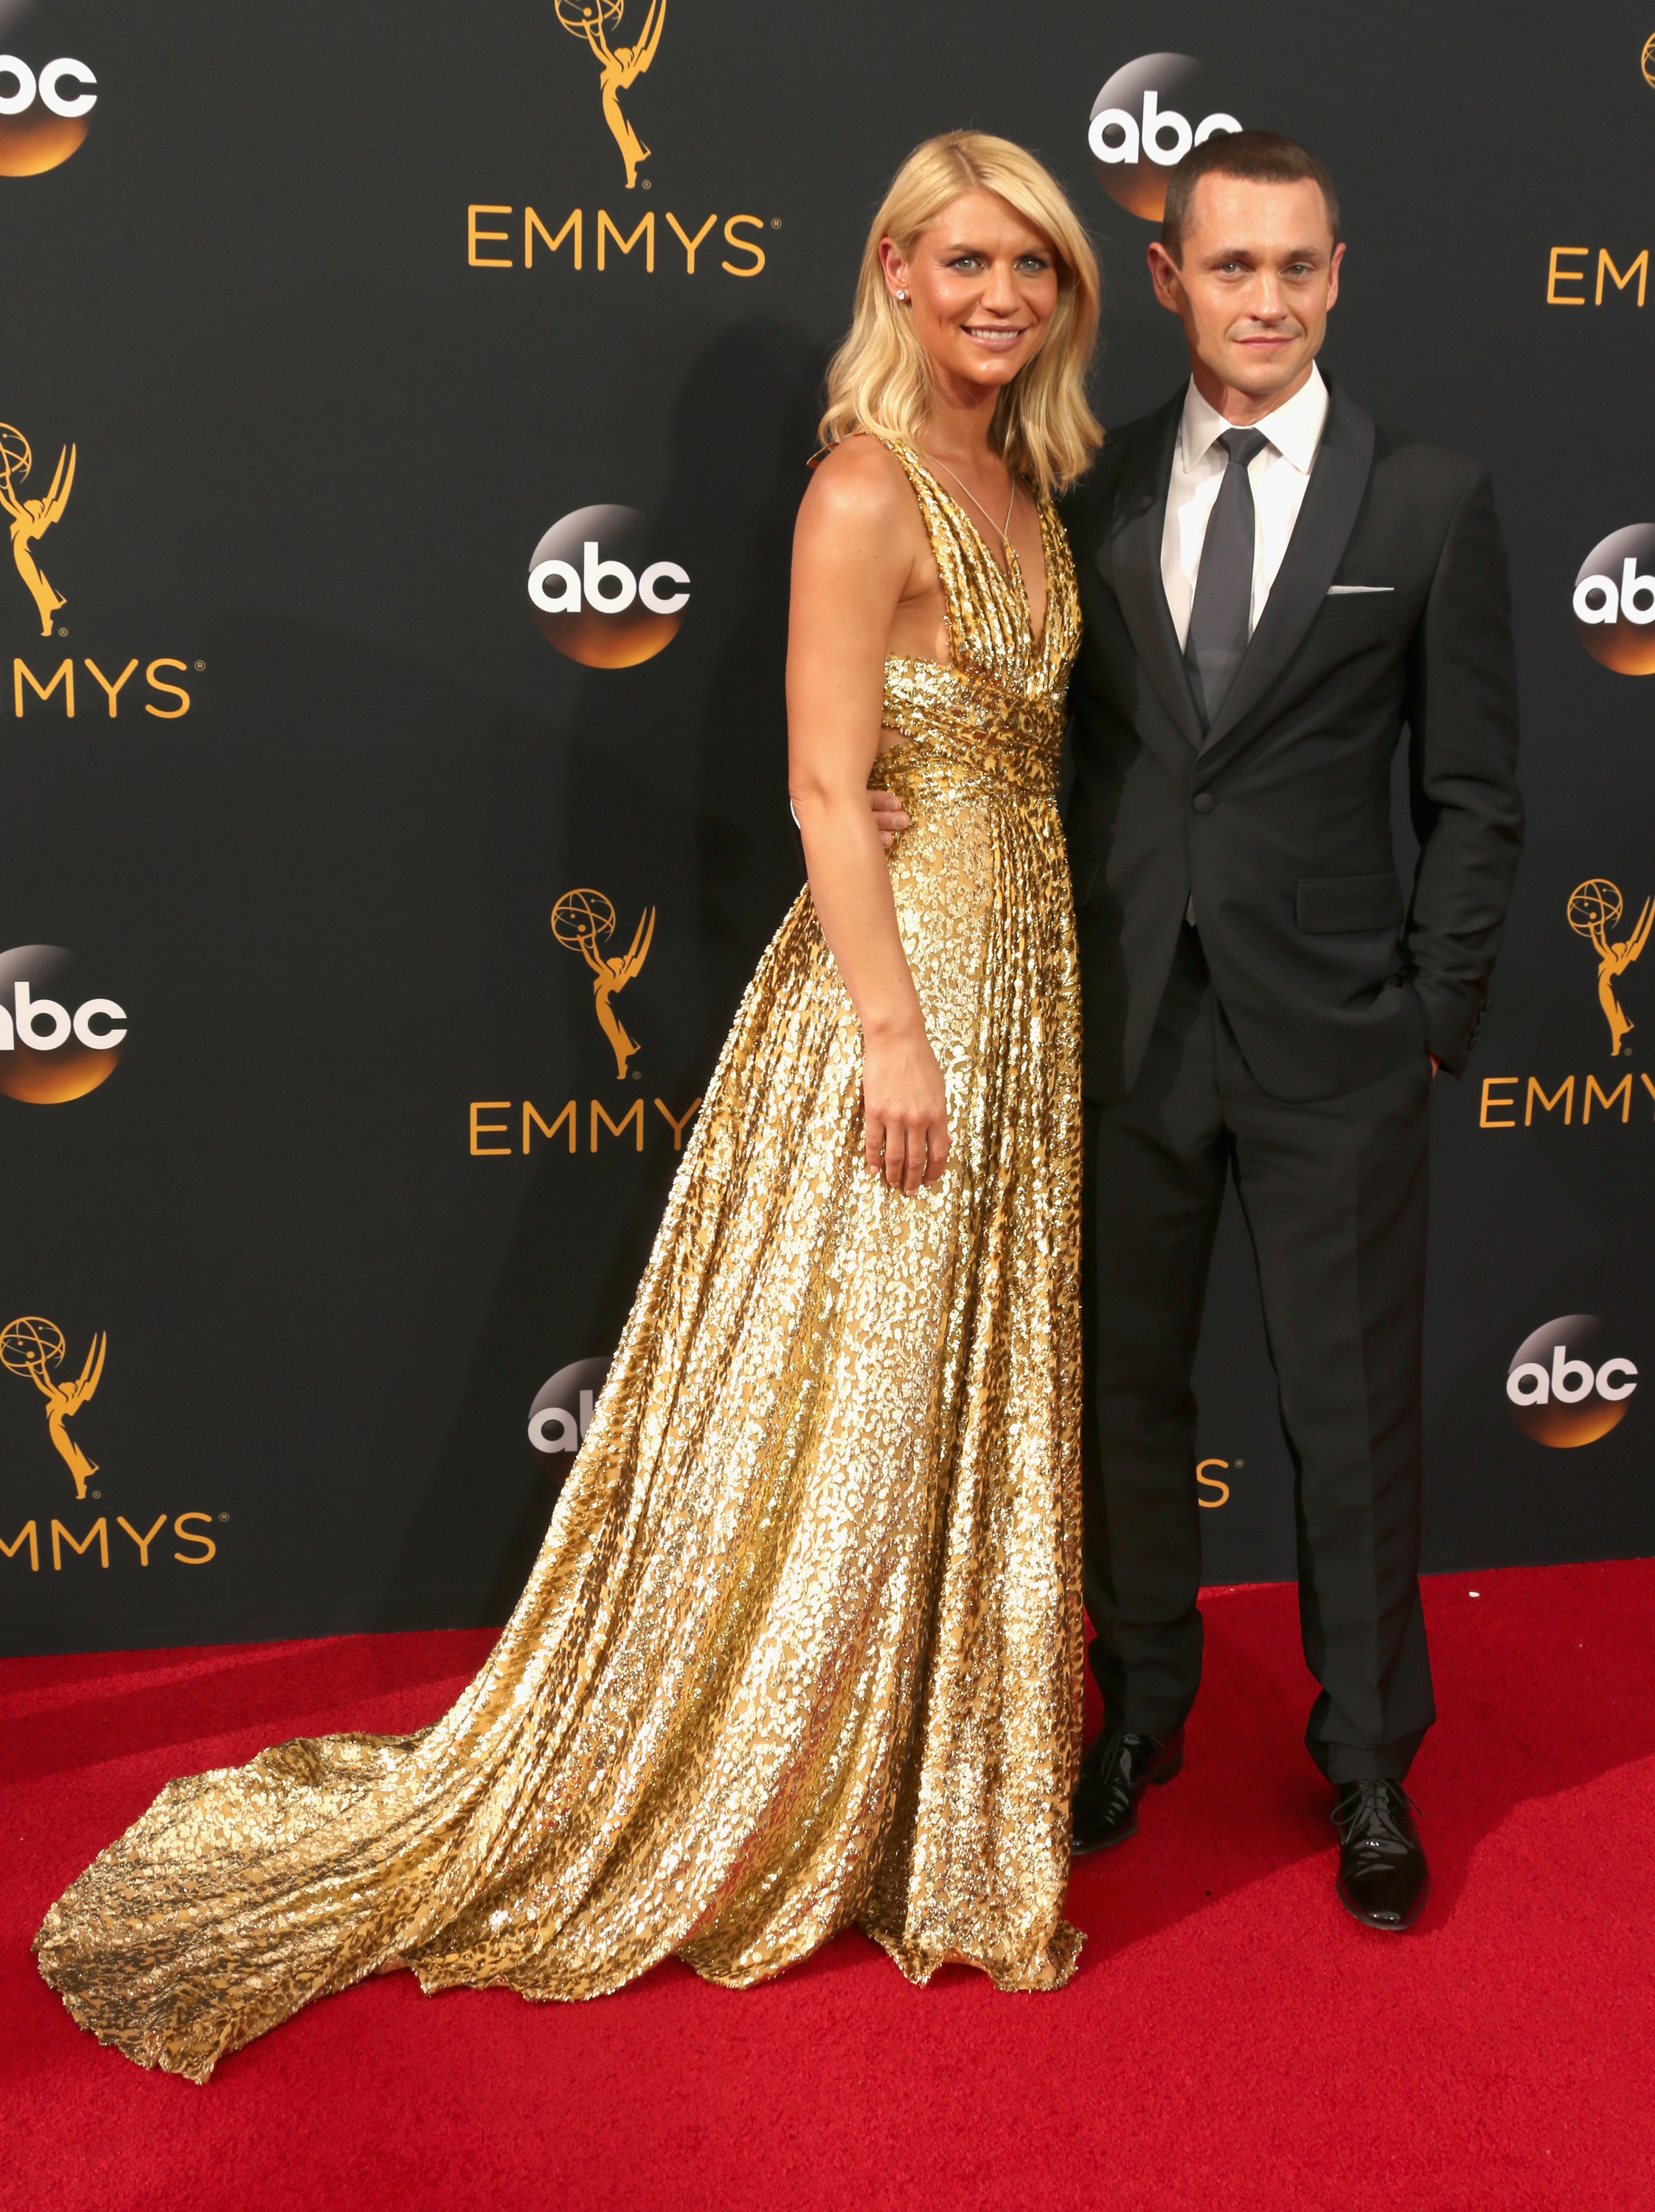 Claire Danes and Hugh Dancy arrive at the 68th Annual Primetime Emmy Awards at Microsoft Theater on Sept. 18, 2016 in Los Angeles.